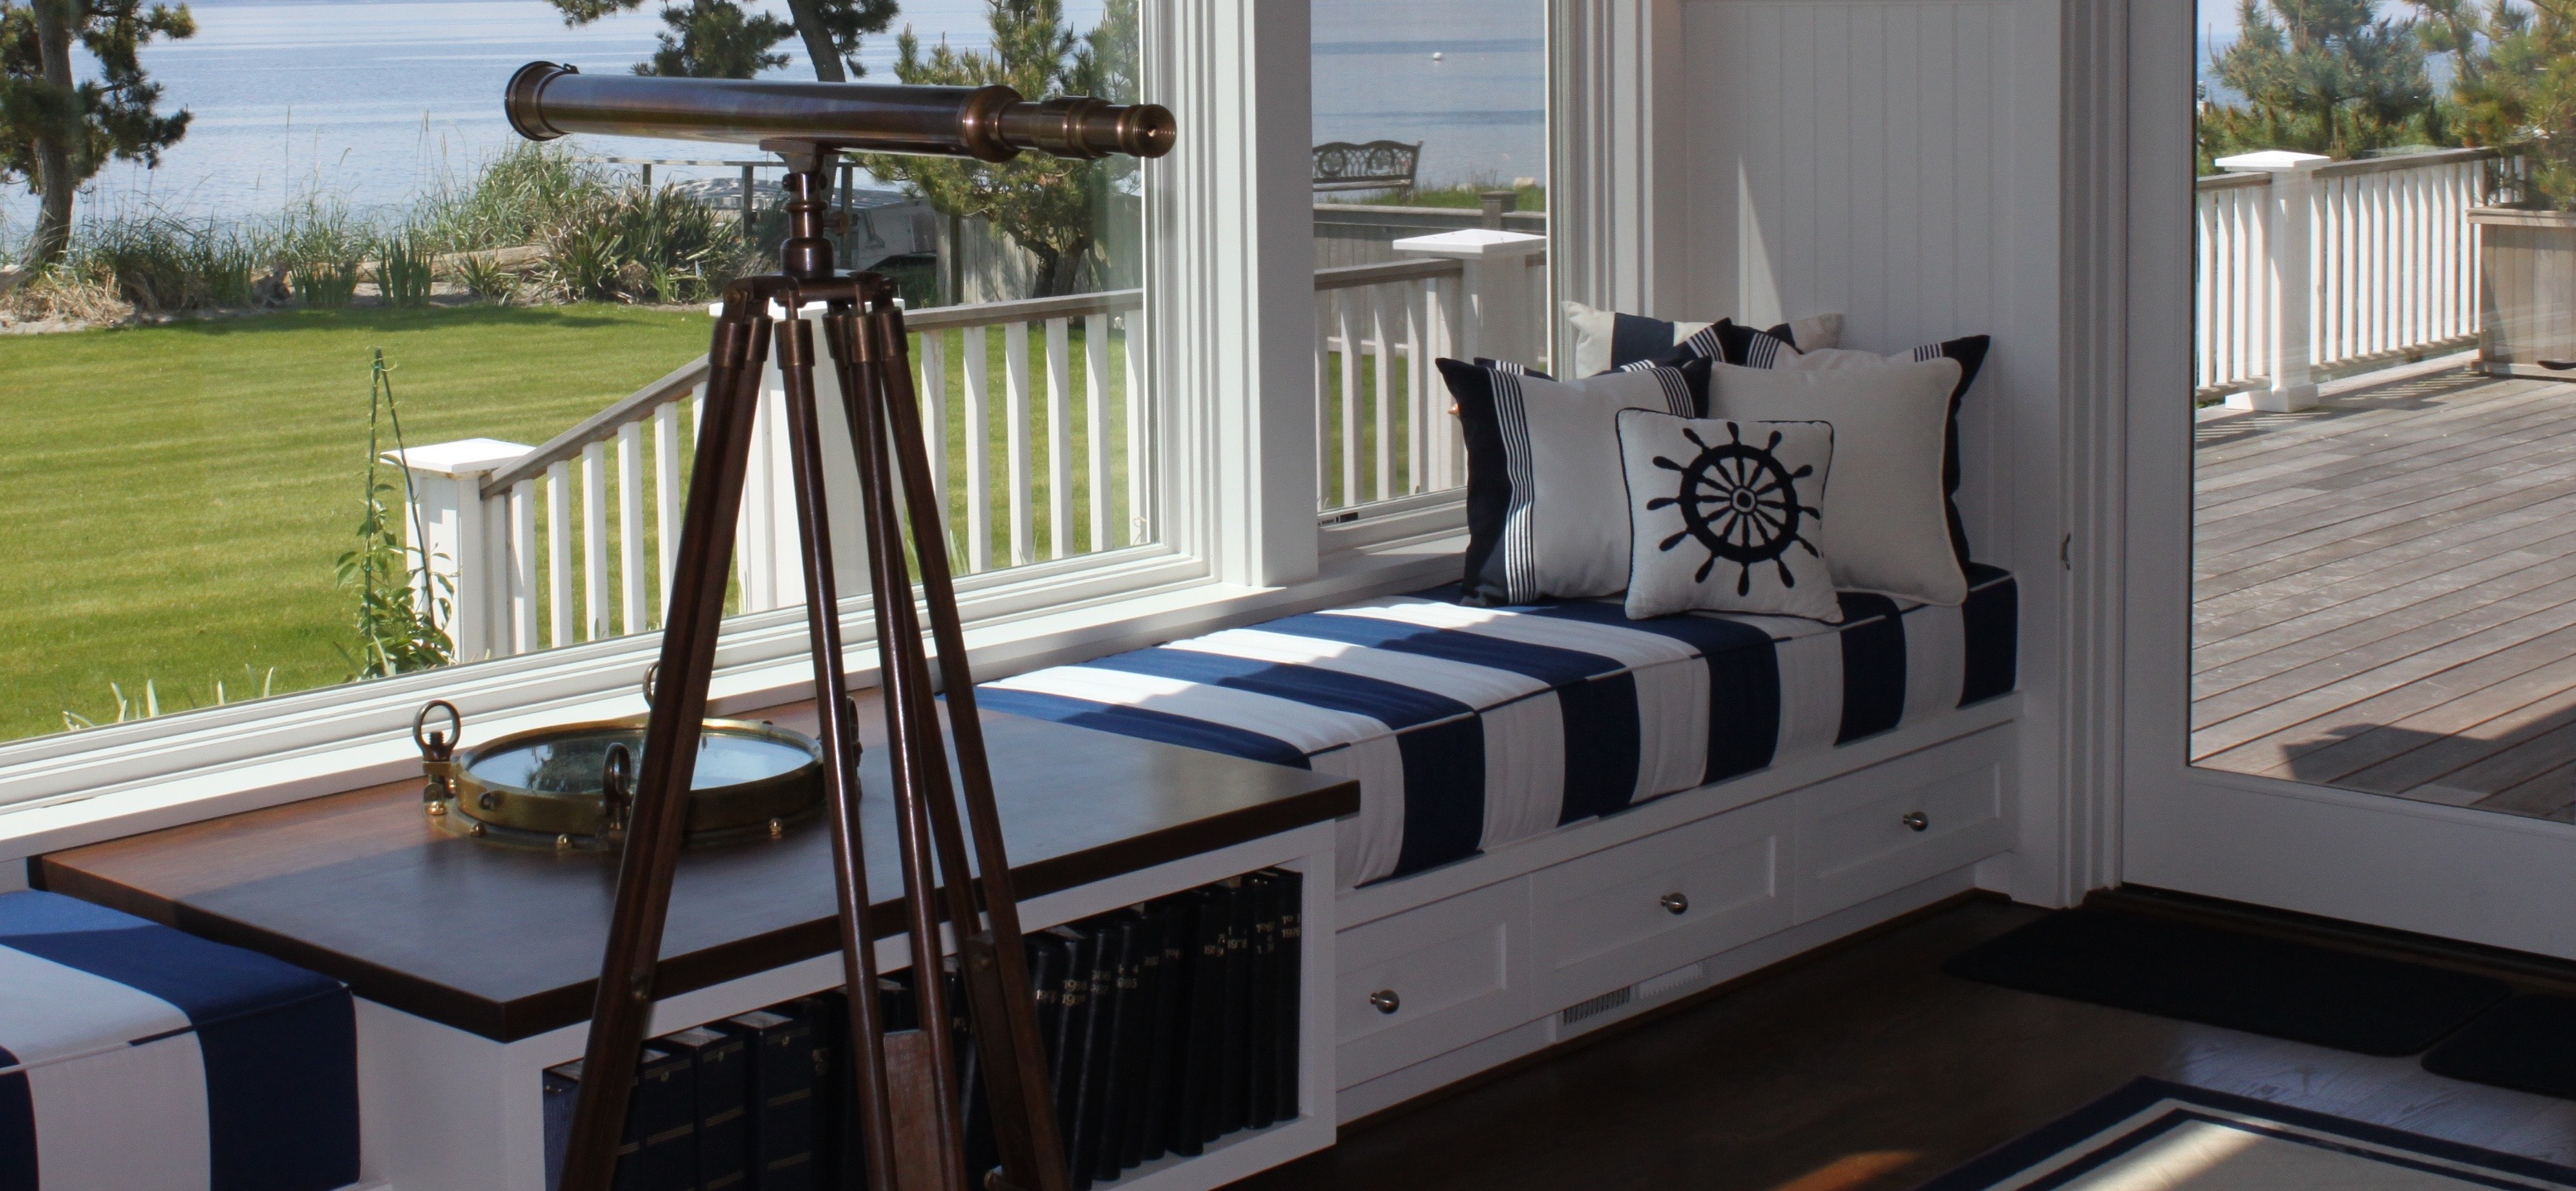 5 Interior Design  Decorating Tips for Creating a Nautical Theme